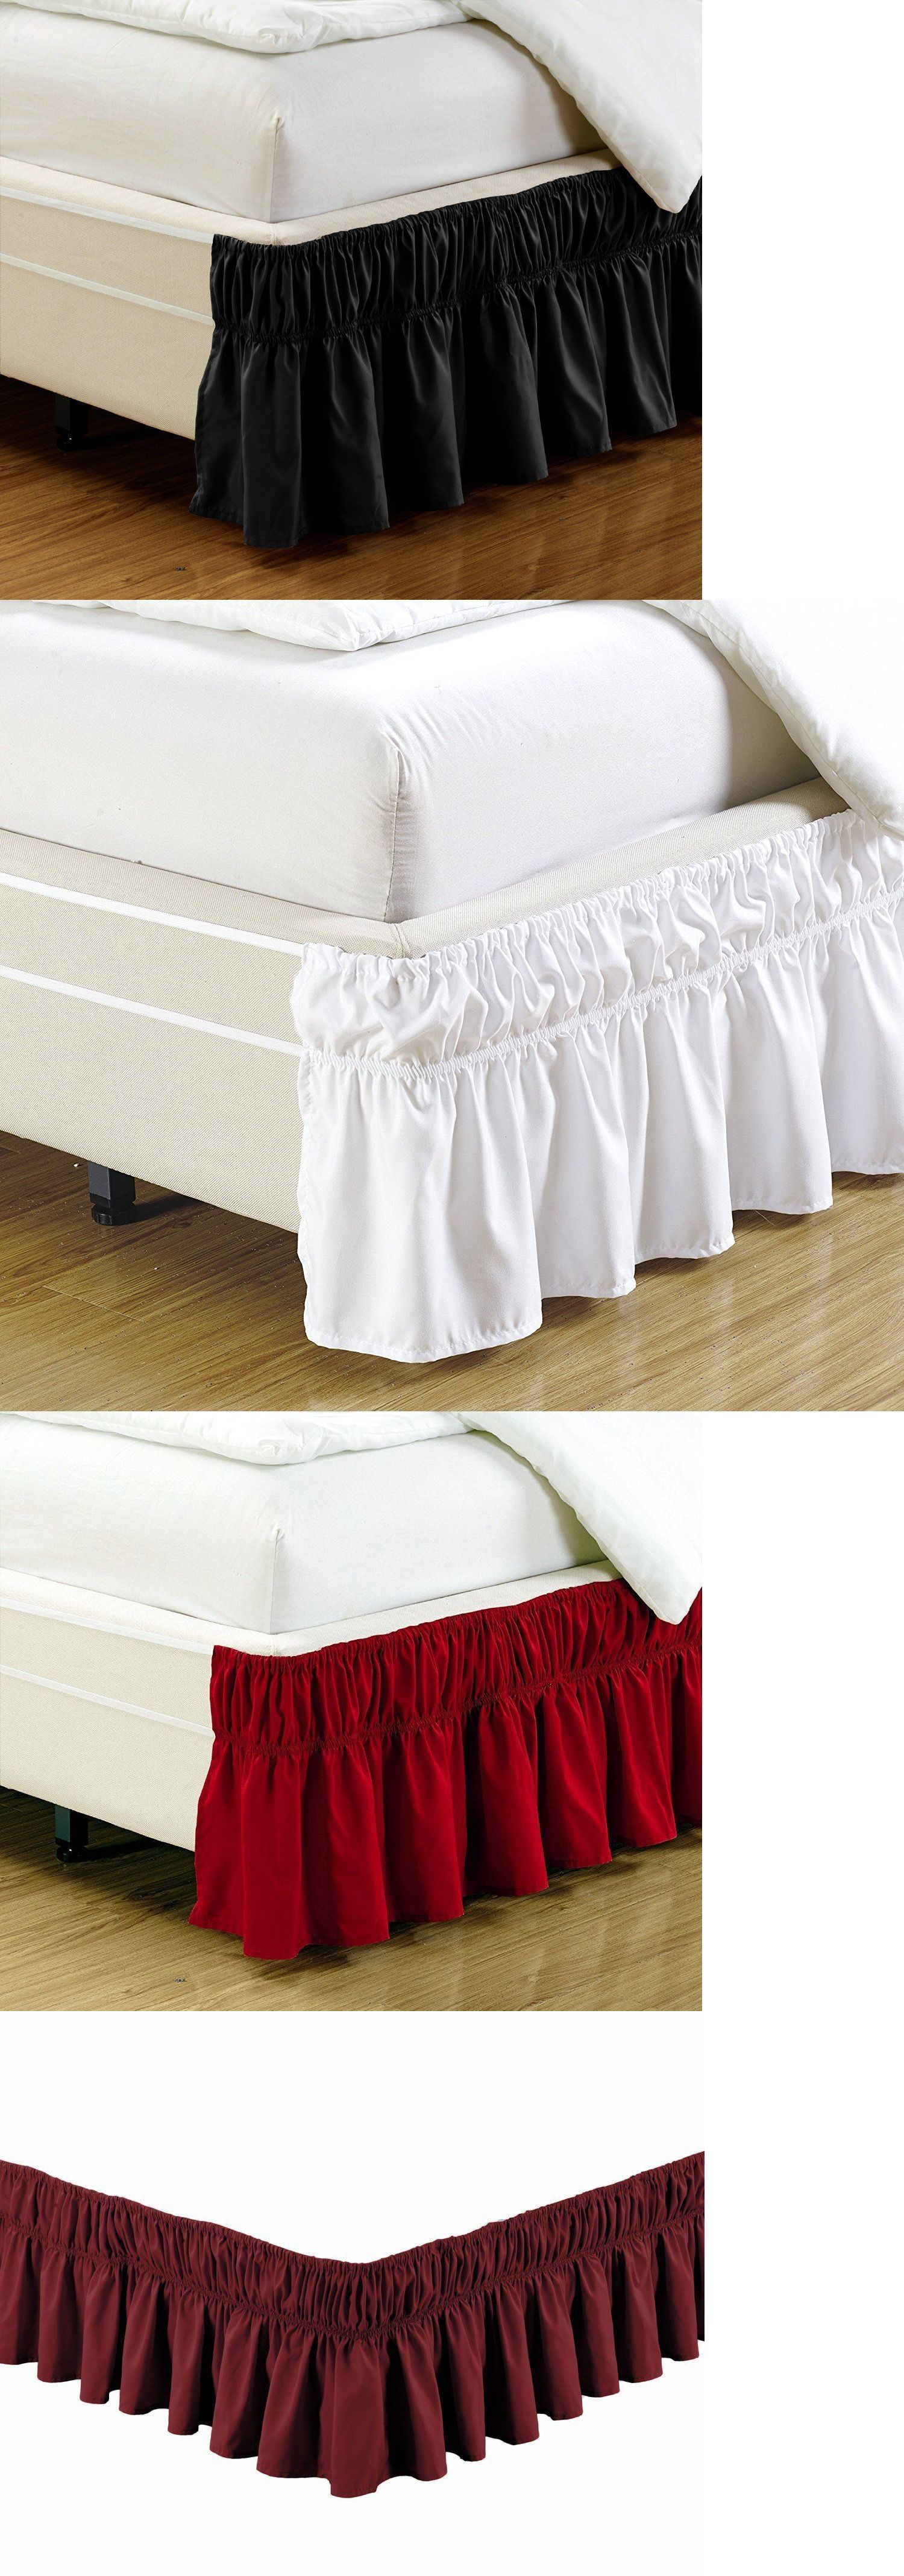 "Fancy Linen Elastic Bed Ruffles Bed-Skirt 17/""Drop Assorted Colors All Sizes New"